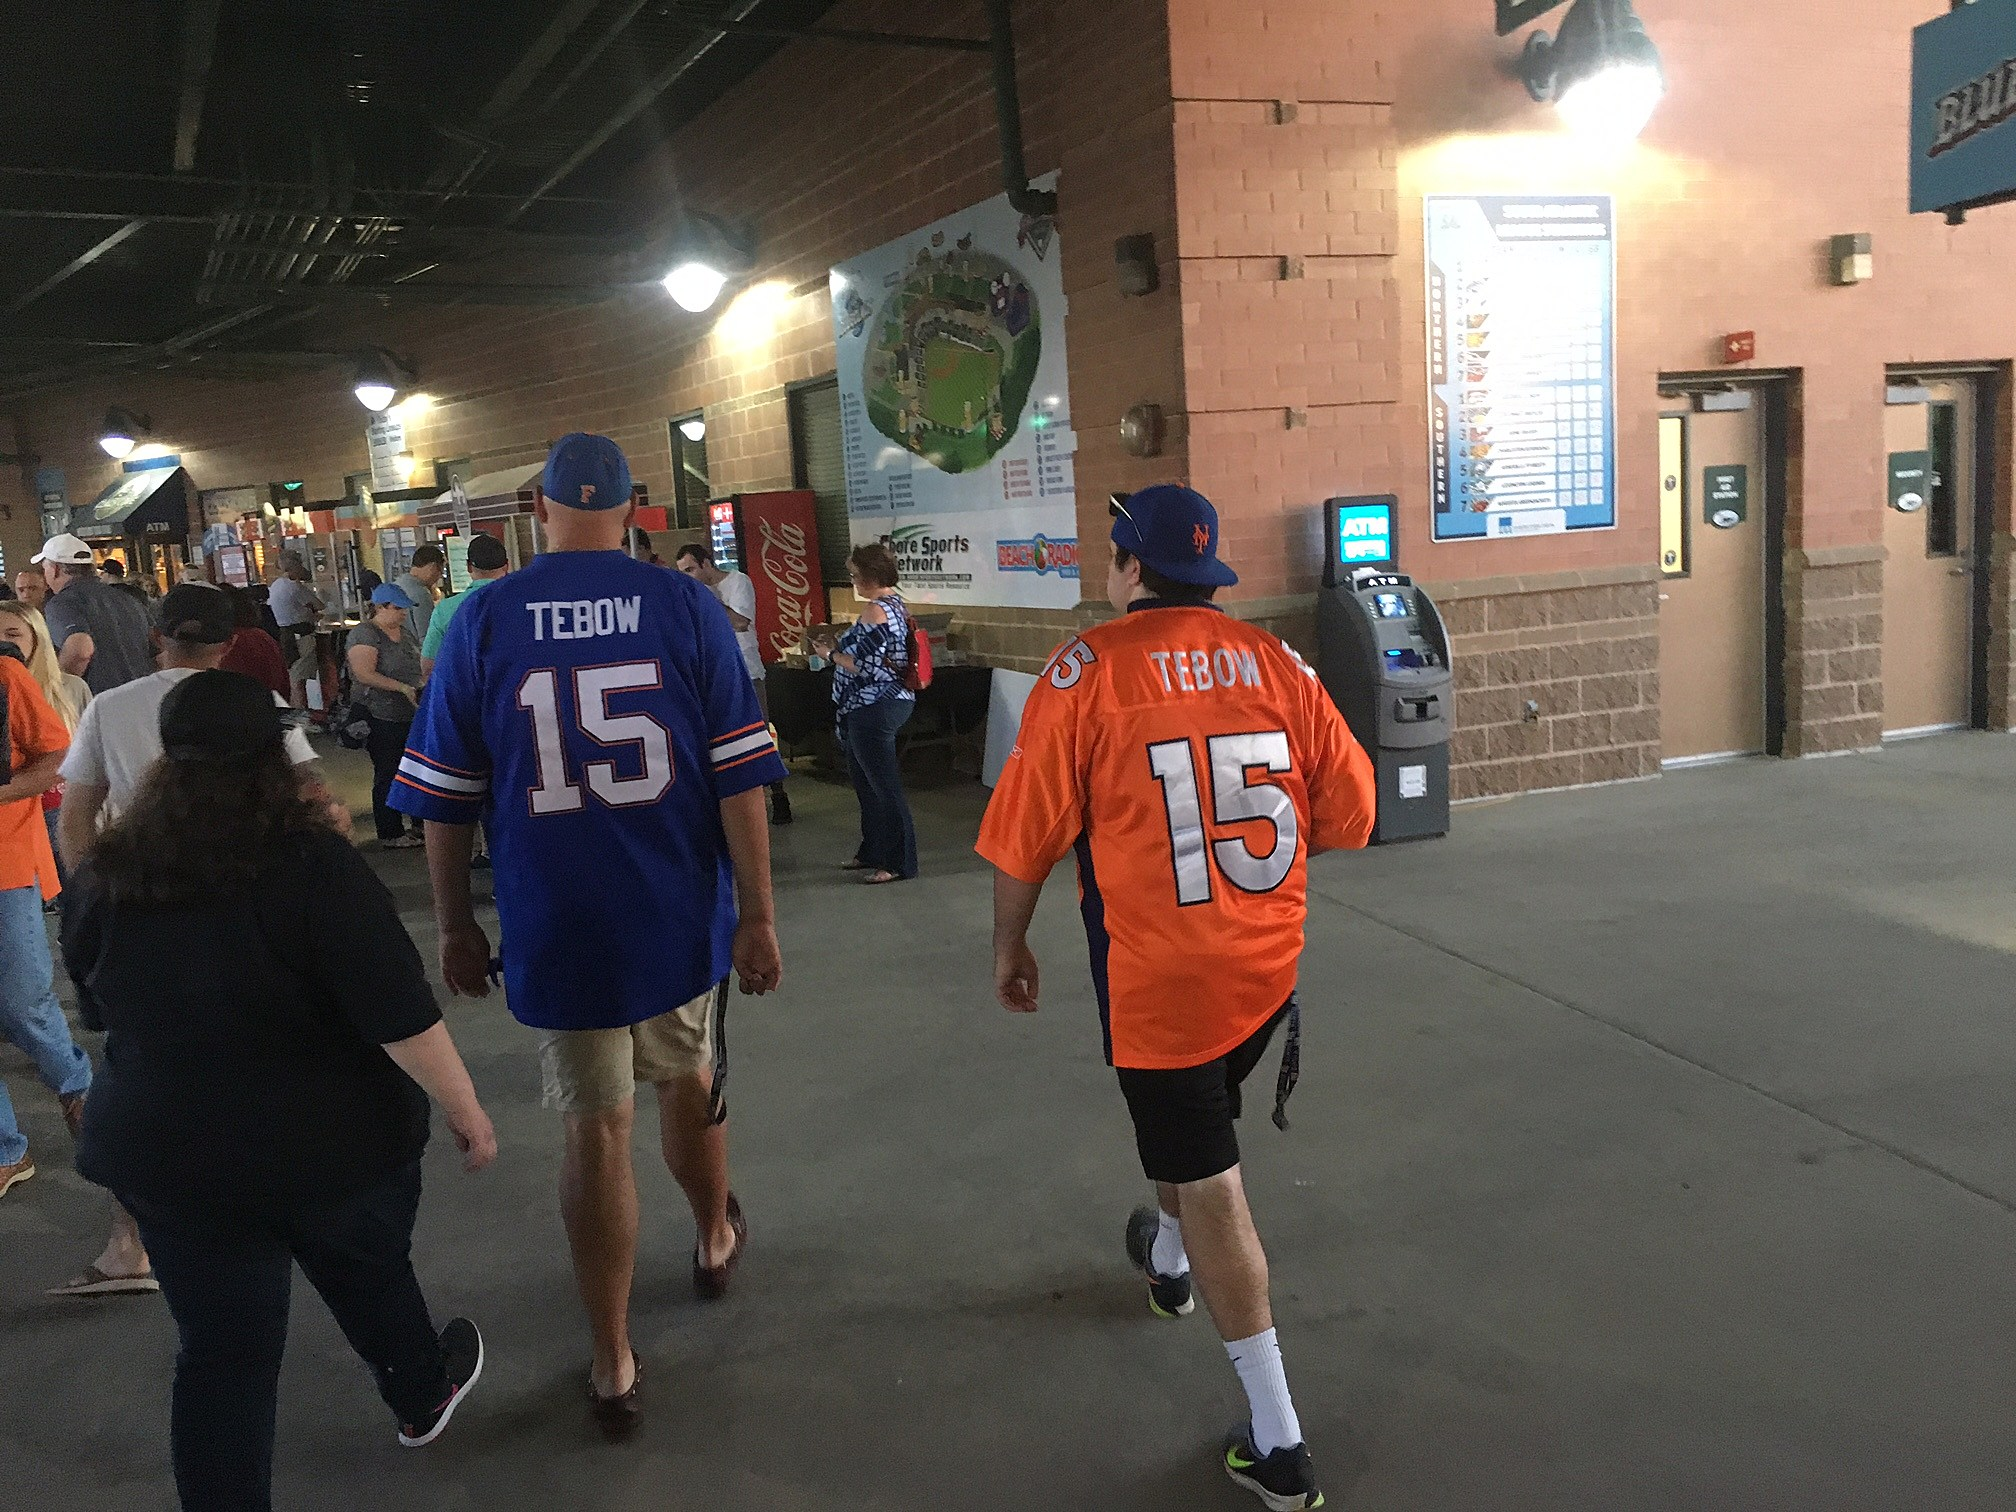 Tim Tebow fans at FirstEnergy Park, home of the Lakewood BlueClaws